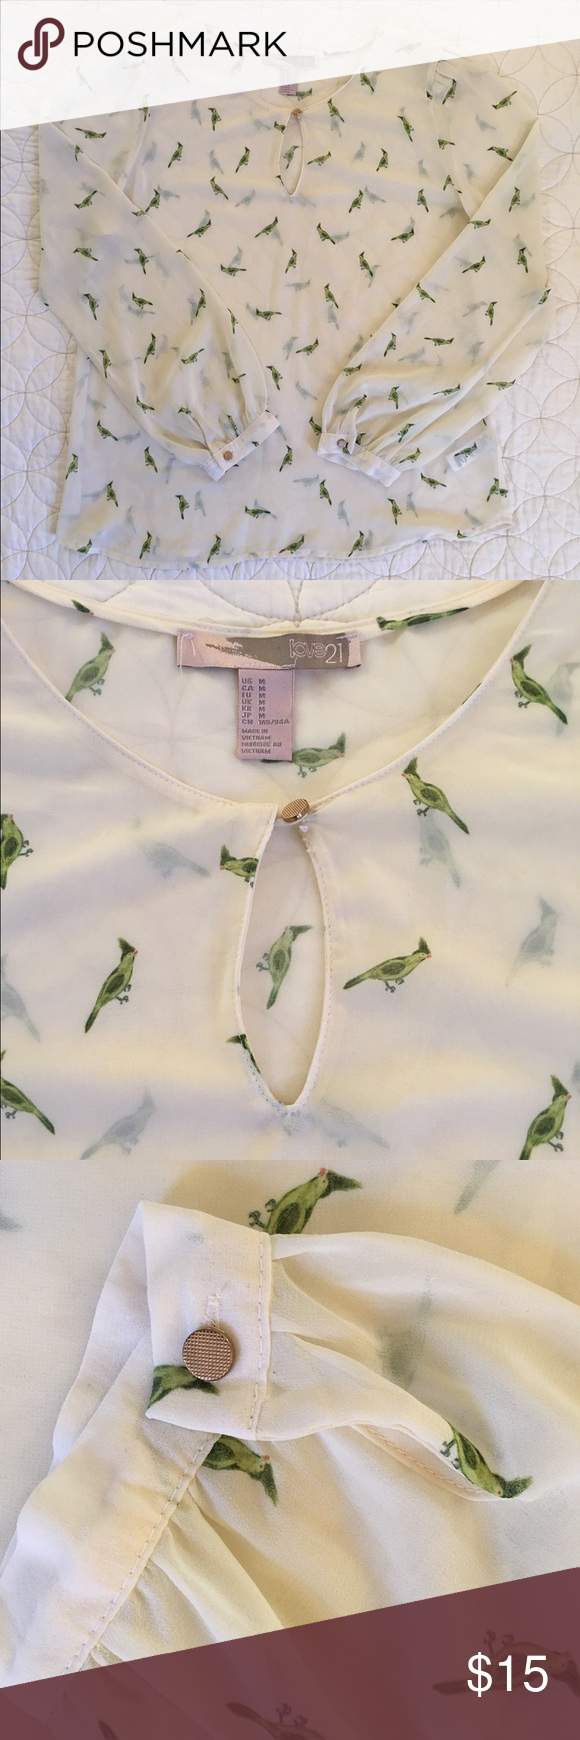 Forever 21 Blouse This top is for a bird lover definitely! So cute and original, and looks great with a pair of jeans or a skirt! Worn once, great condition! 🐤 Forever 21 Tops Blouses